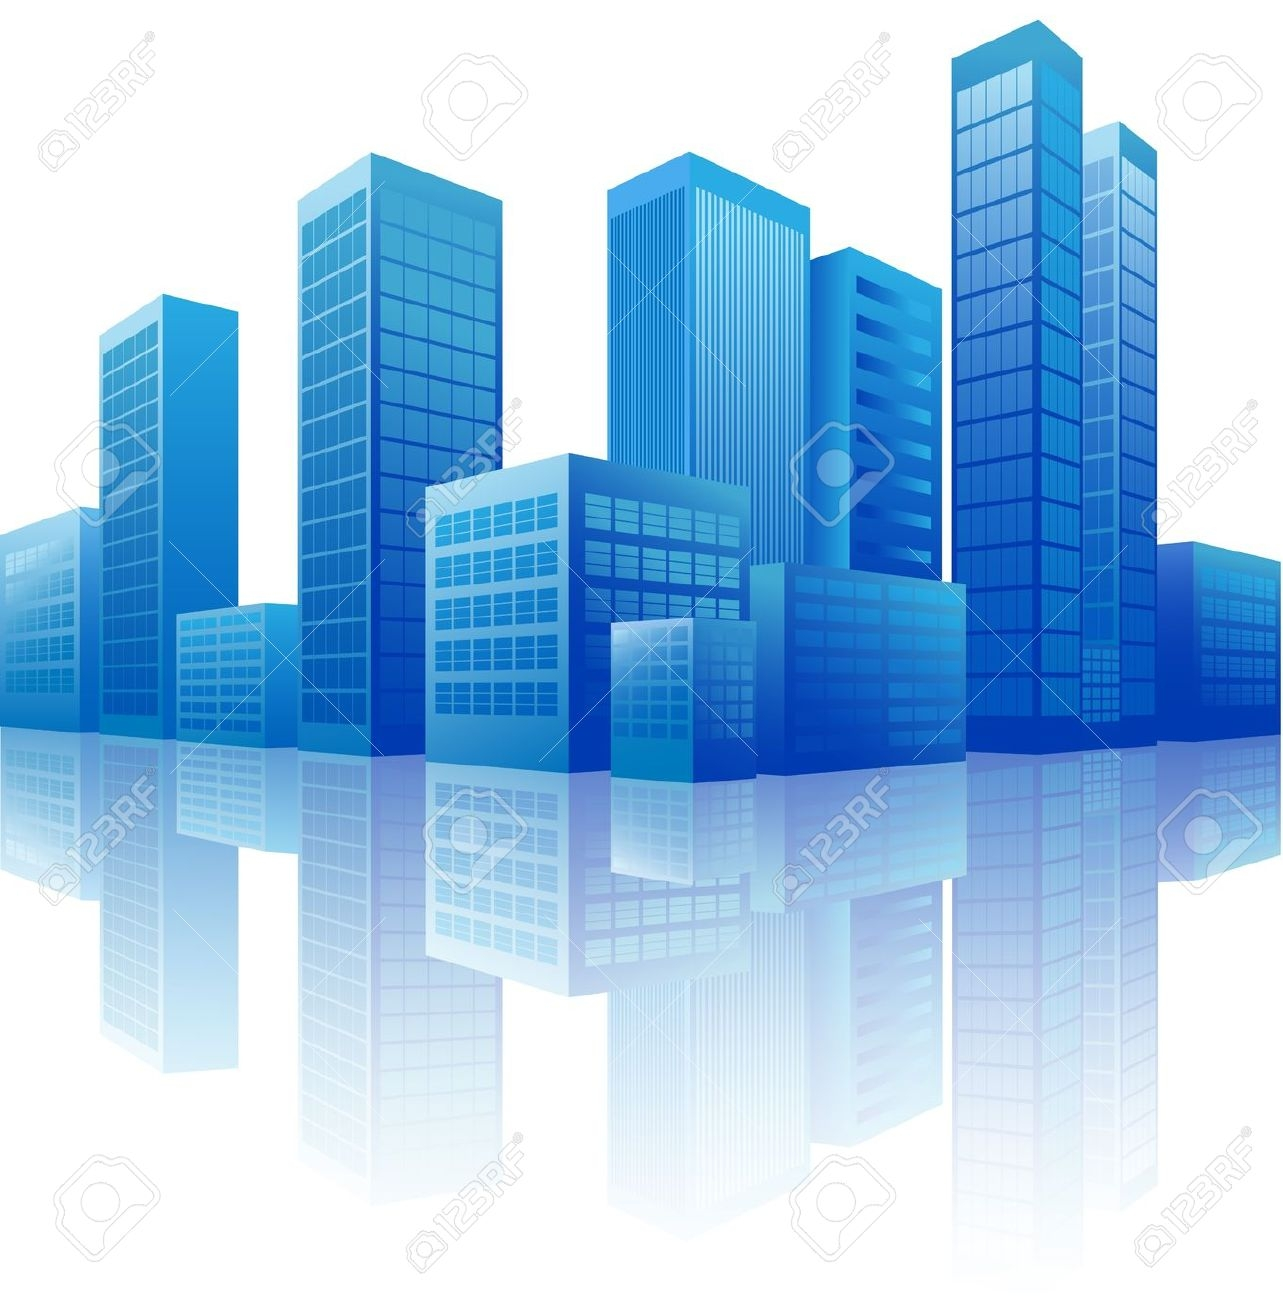 Company building clipart png clipart stock Website Building Free Clip Art – Clipart Free Download clipart stock